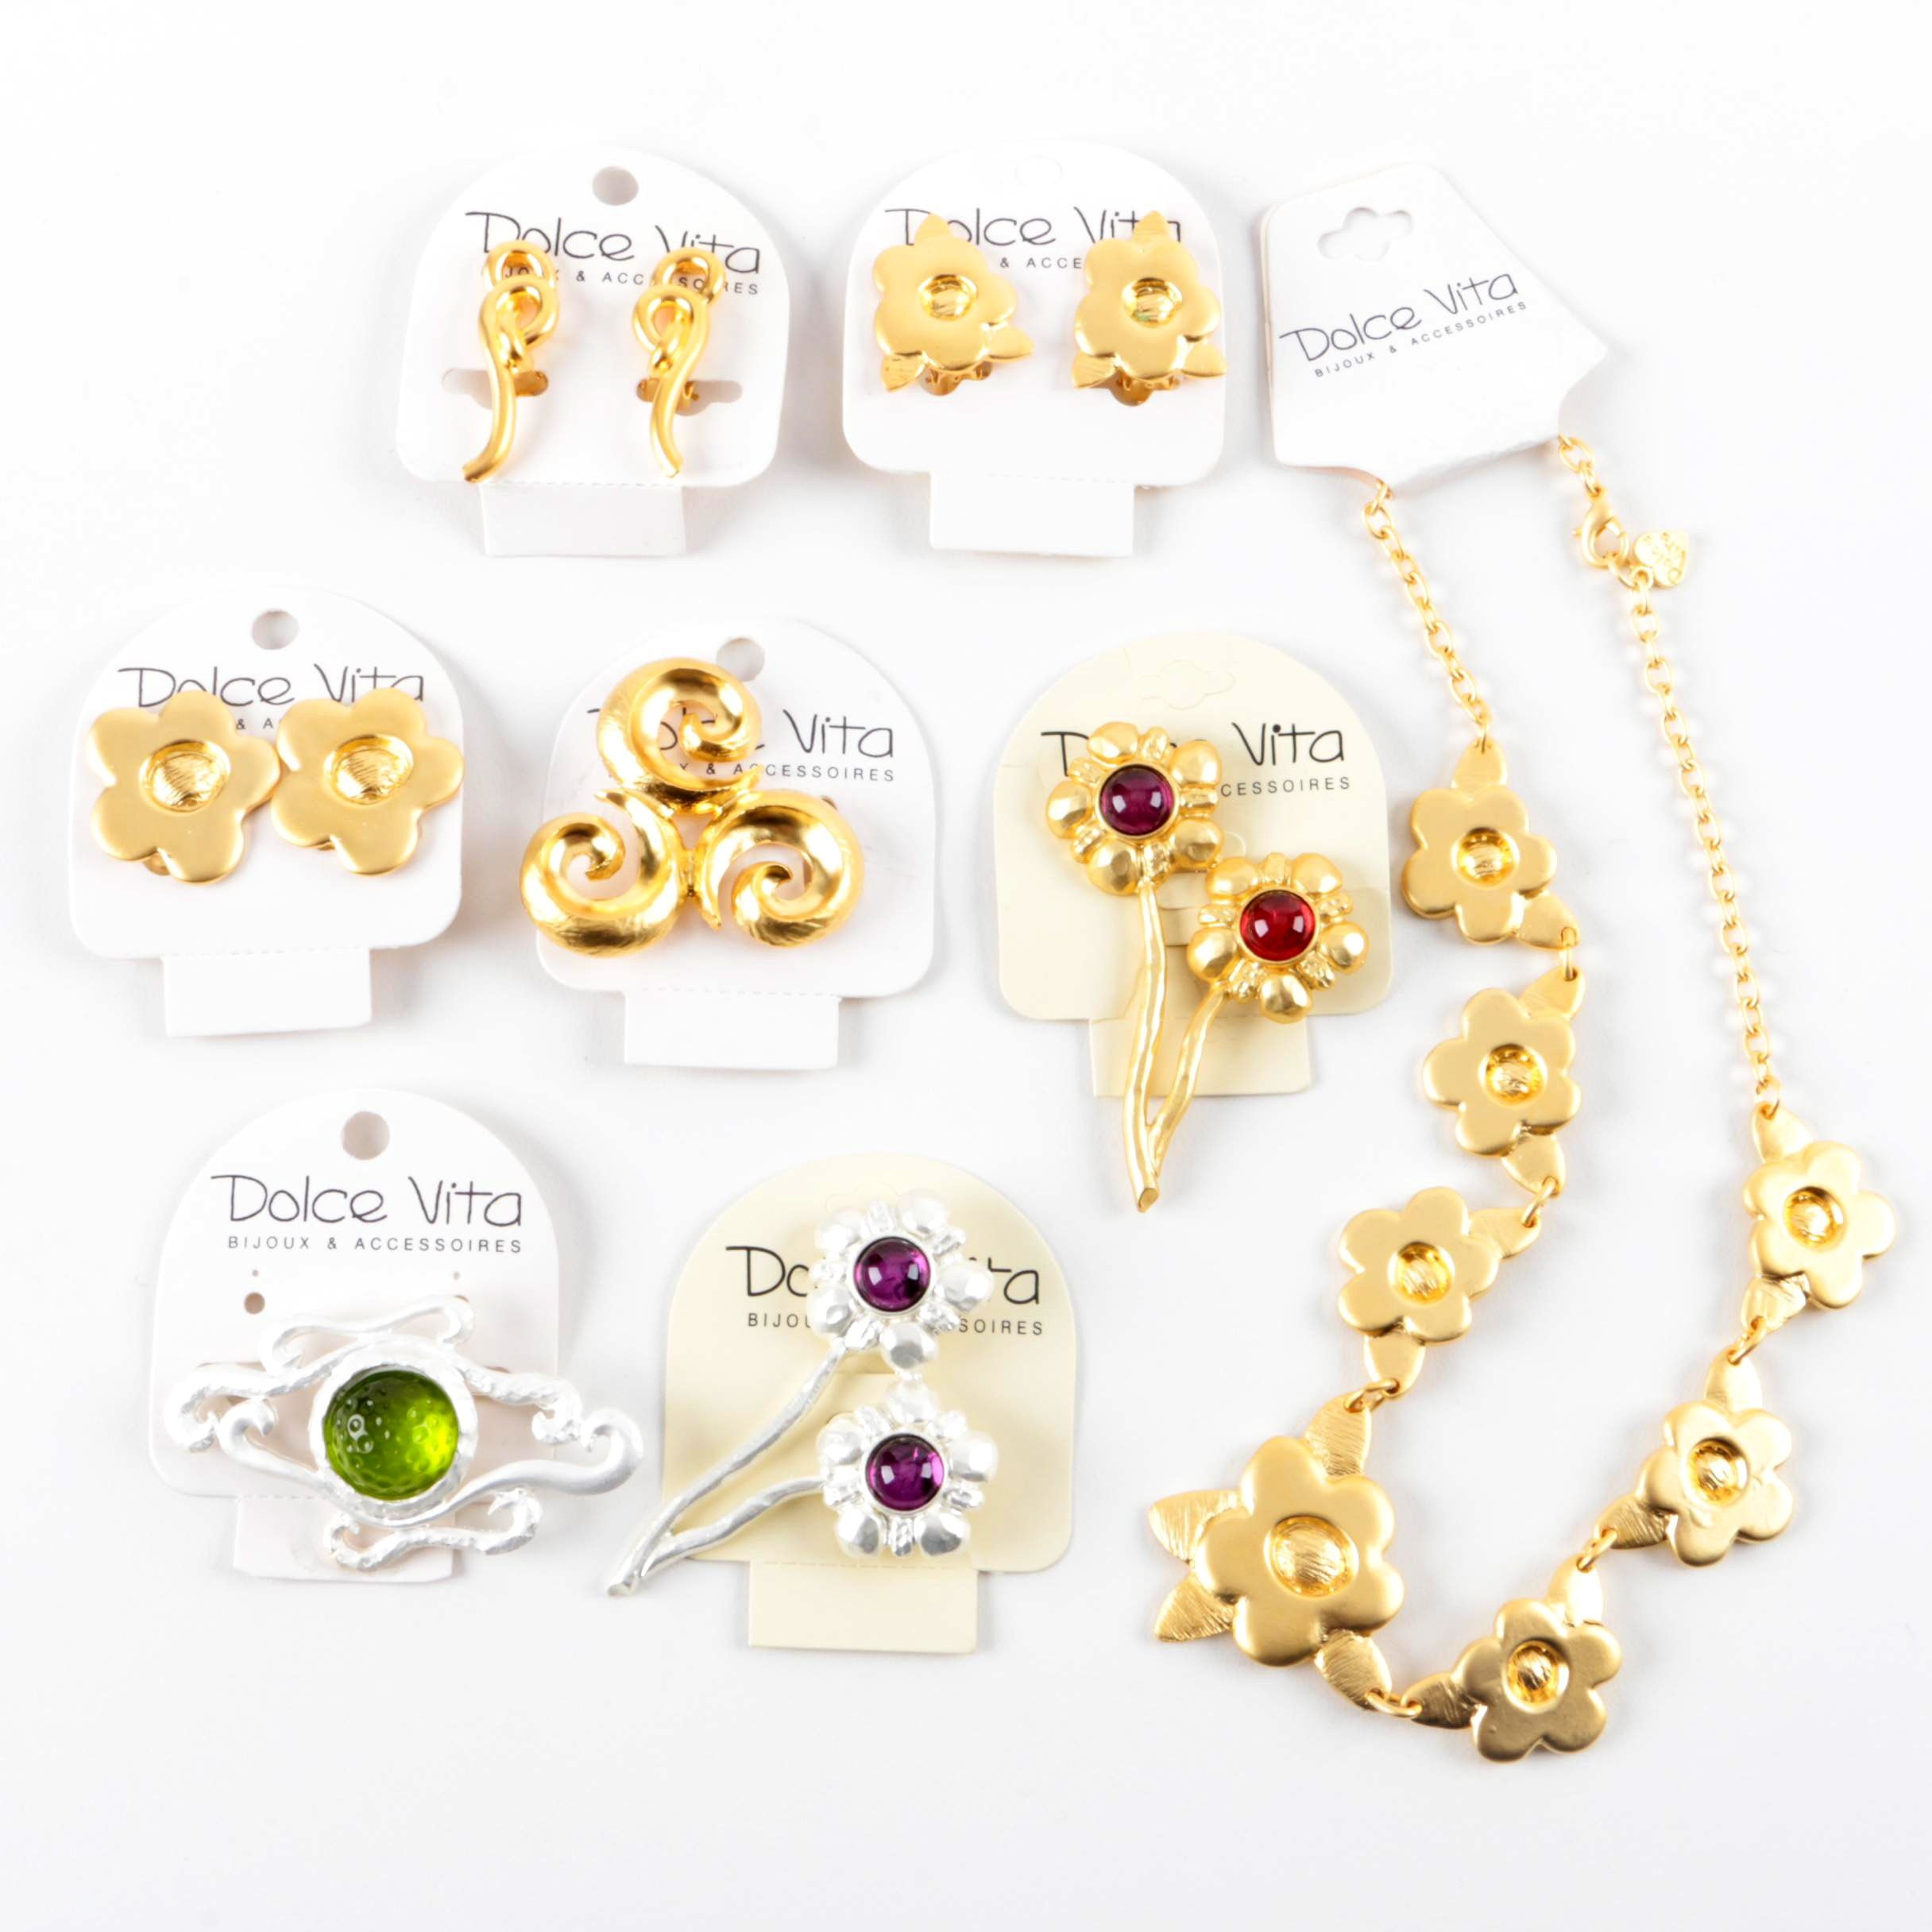 Selection of Dolce Vita Gold and Silver Tone Necklace, Earrings and Brooches